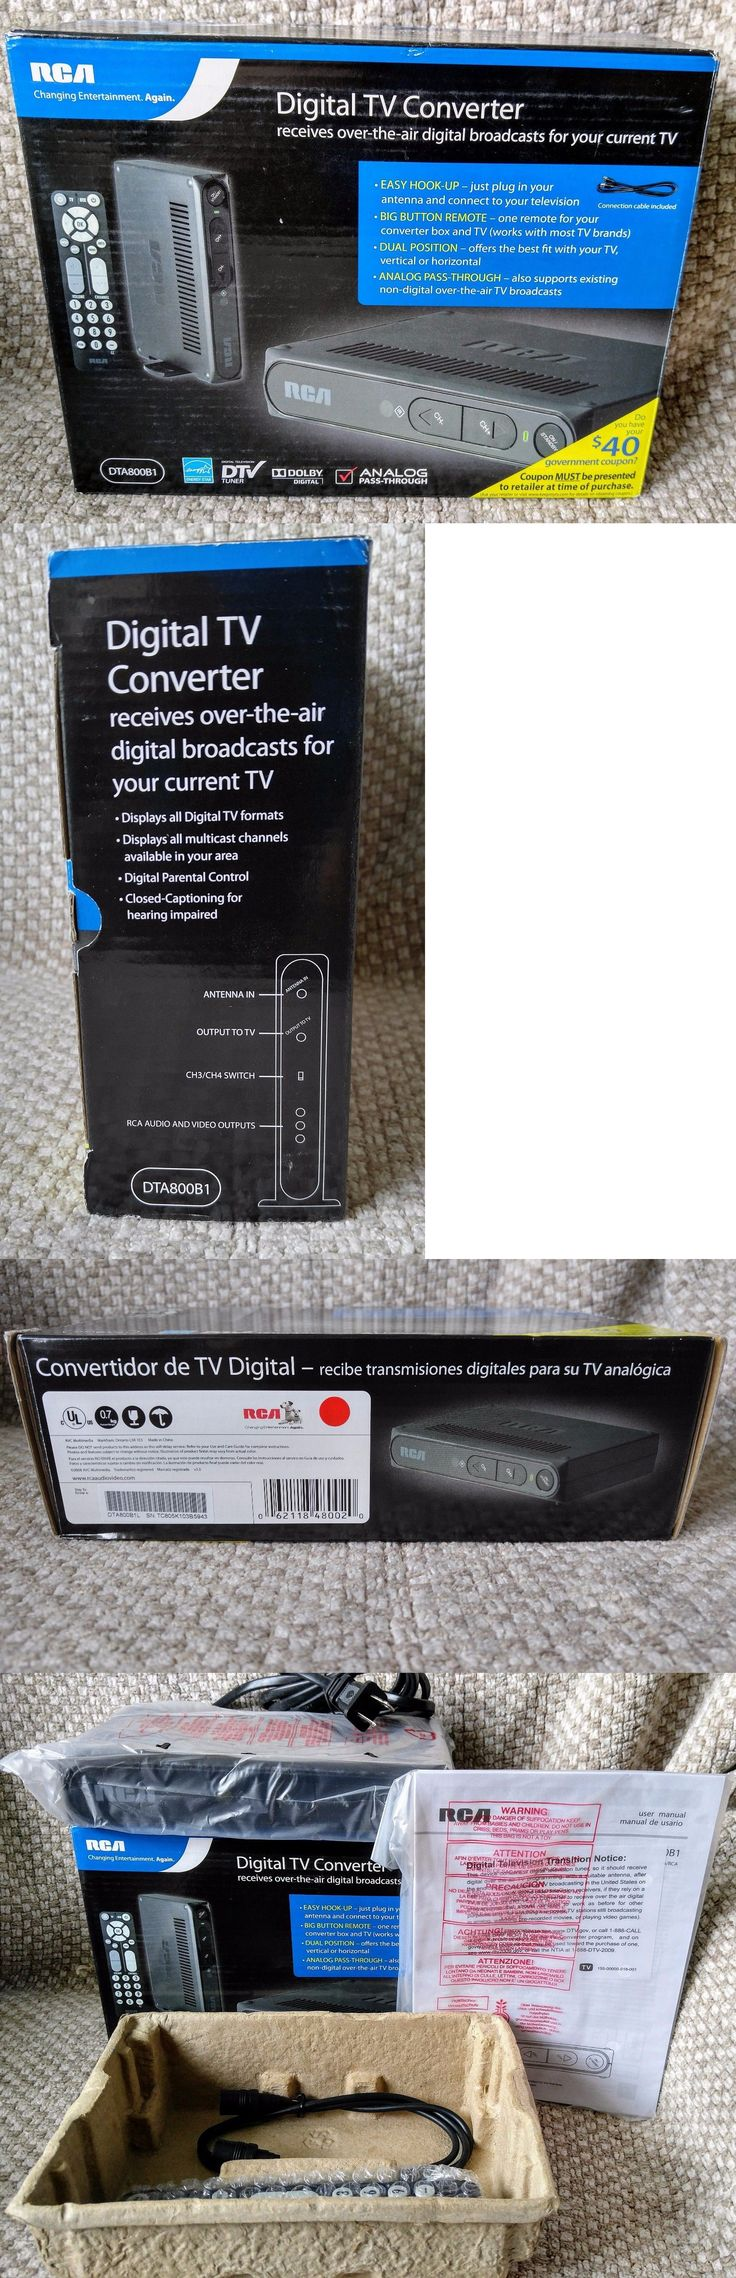 Cable TV Boxes: New Rca Digital Tv Converter Box Remote Dta800b1 Dolby Analog Pass Through Energ -> BUY IT NOW ONLY: $34.95 on eBay!